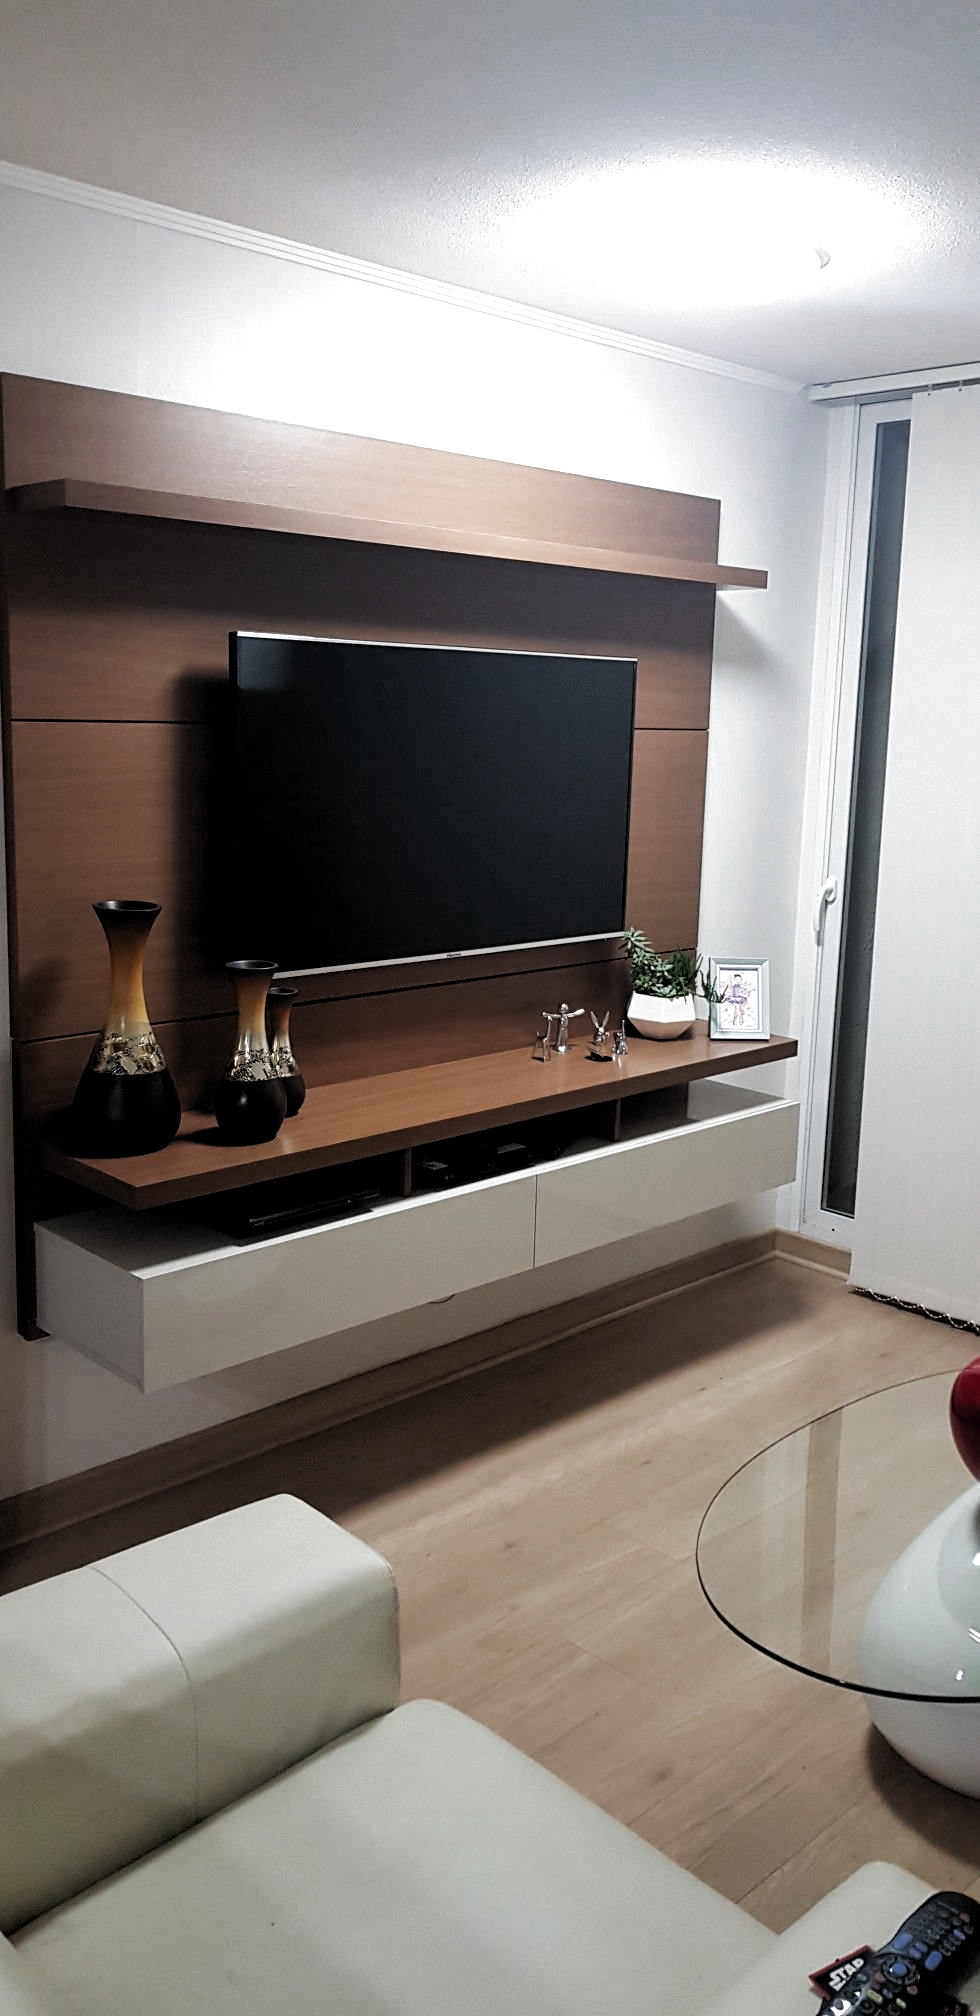 Transform Your Room In Your House Entertainment Room With Tv Room Ideas Check O Tv Room Centrodee In 2020 Tv Room Design Living Room Design Modern Tv Wall Decor